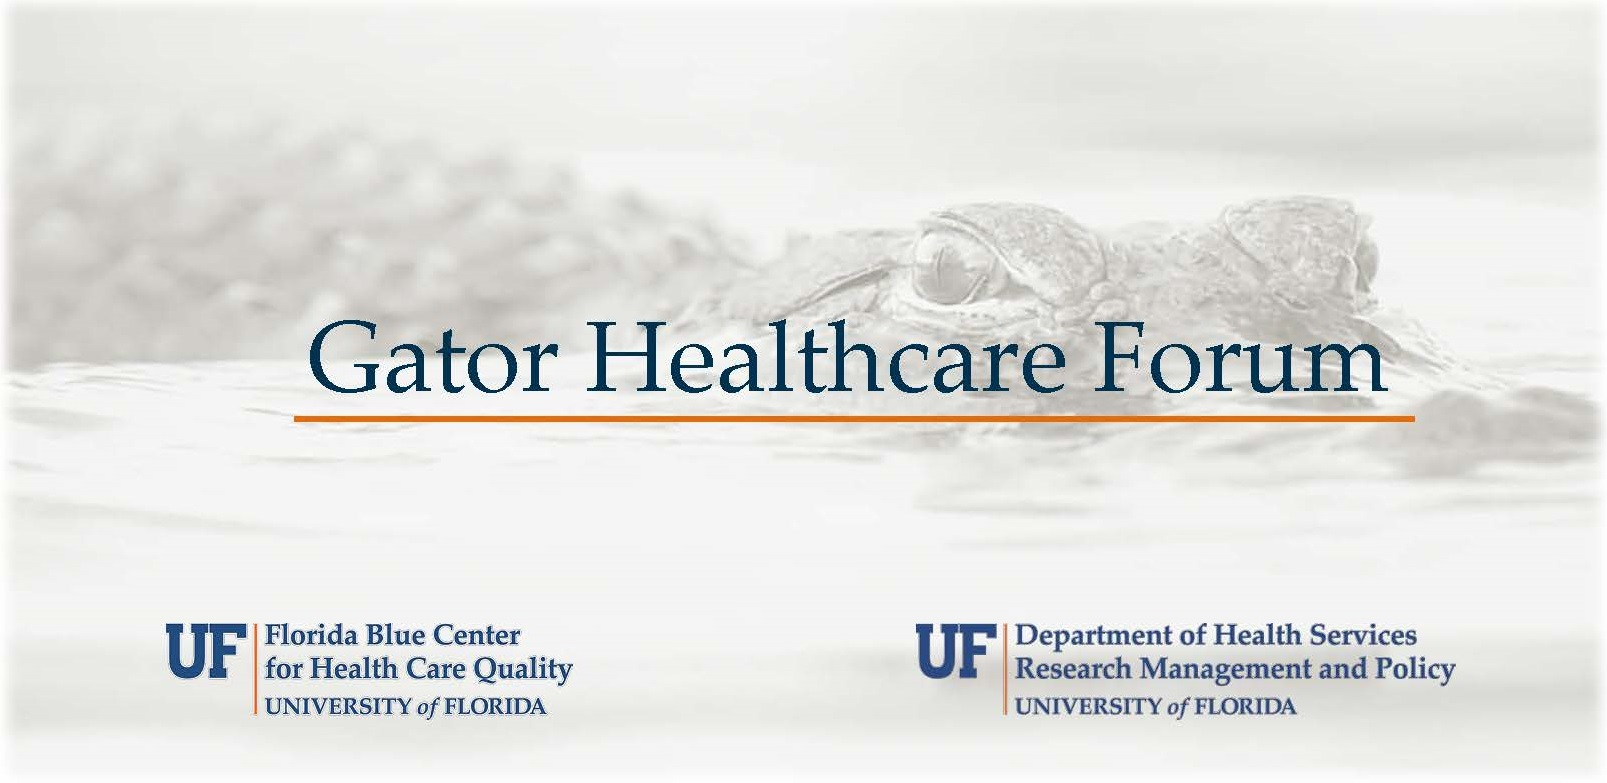 Gator Healthcare Forum 2017